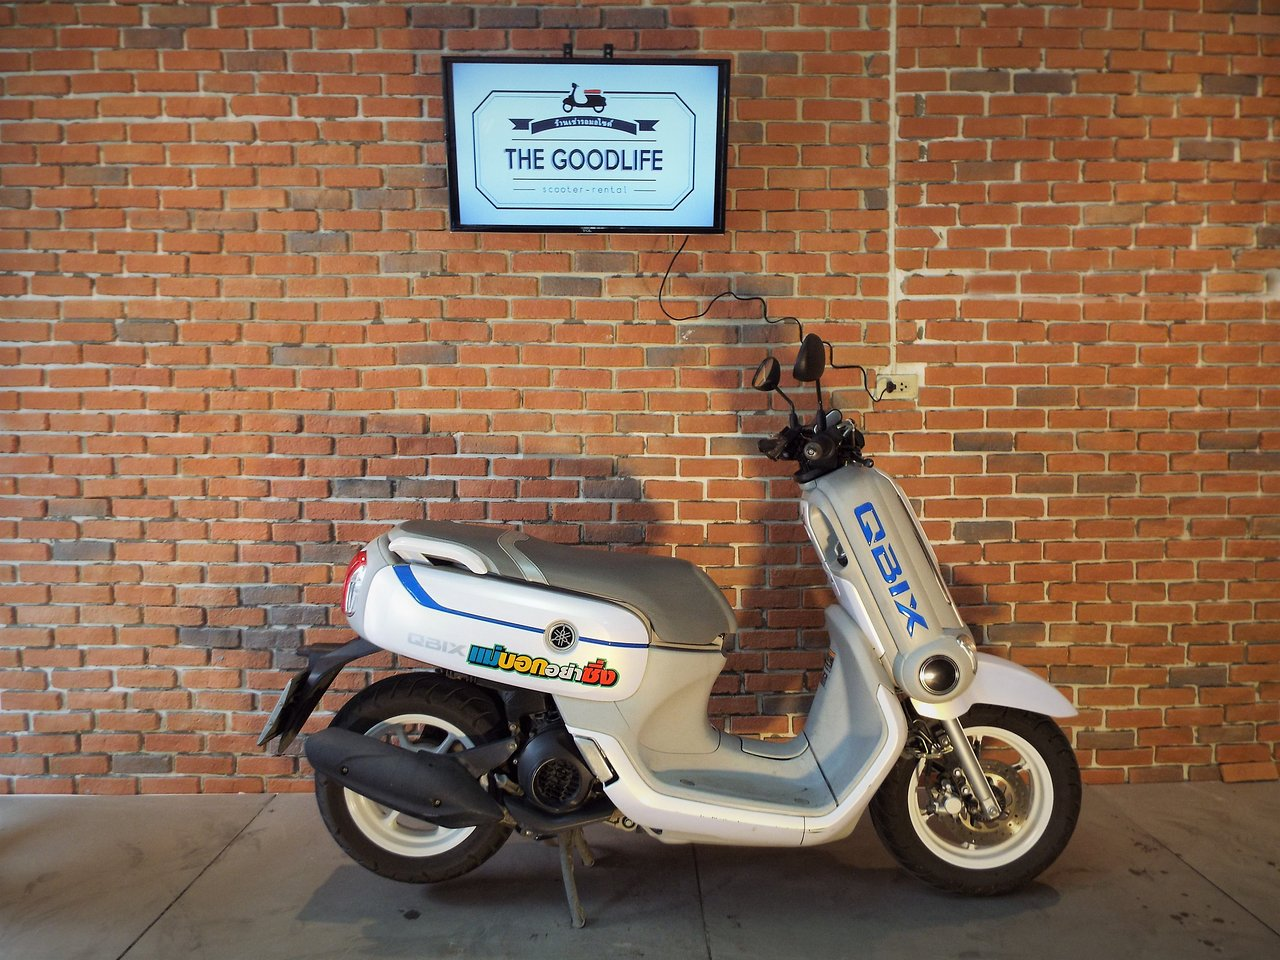 Goodlife Scooter Rental Bangkok 2020 All You Need To Know